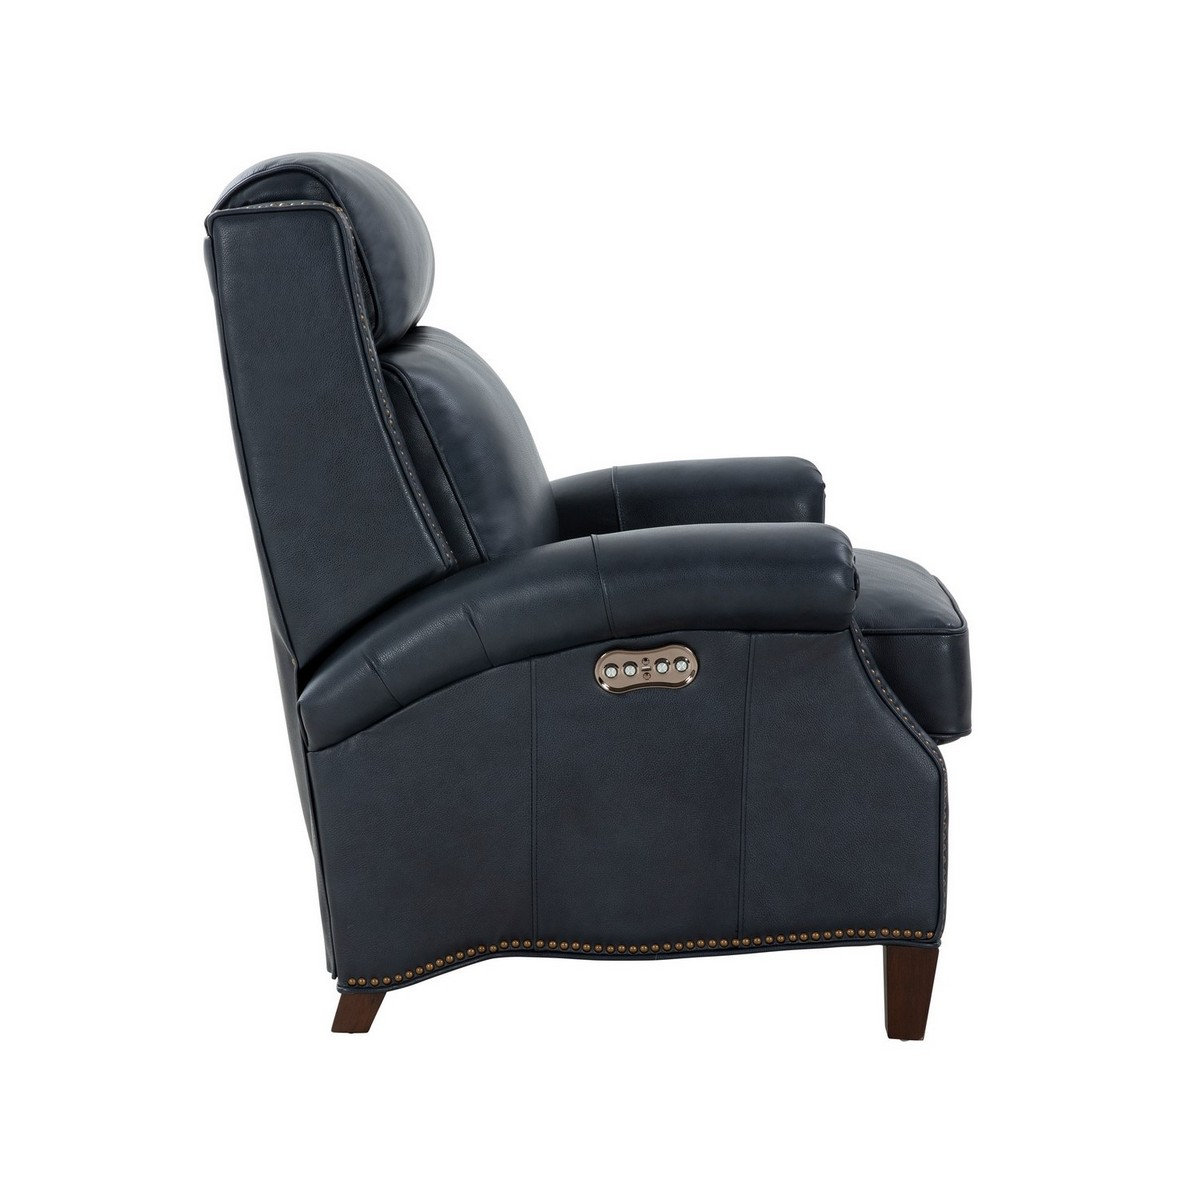 Barcalounger Barrett Power Recliner Chair with Power Head Rest - Barone Navy Blue/All Leather